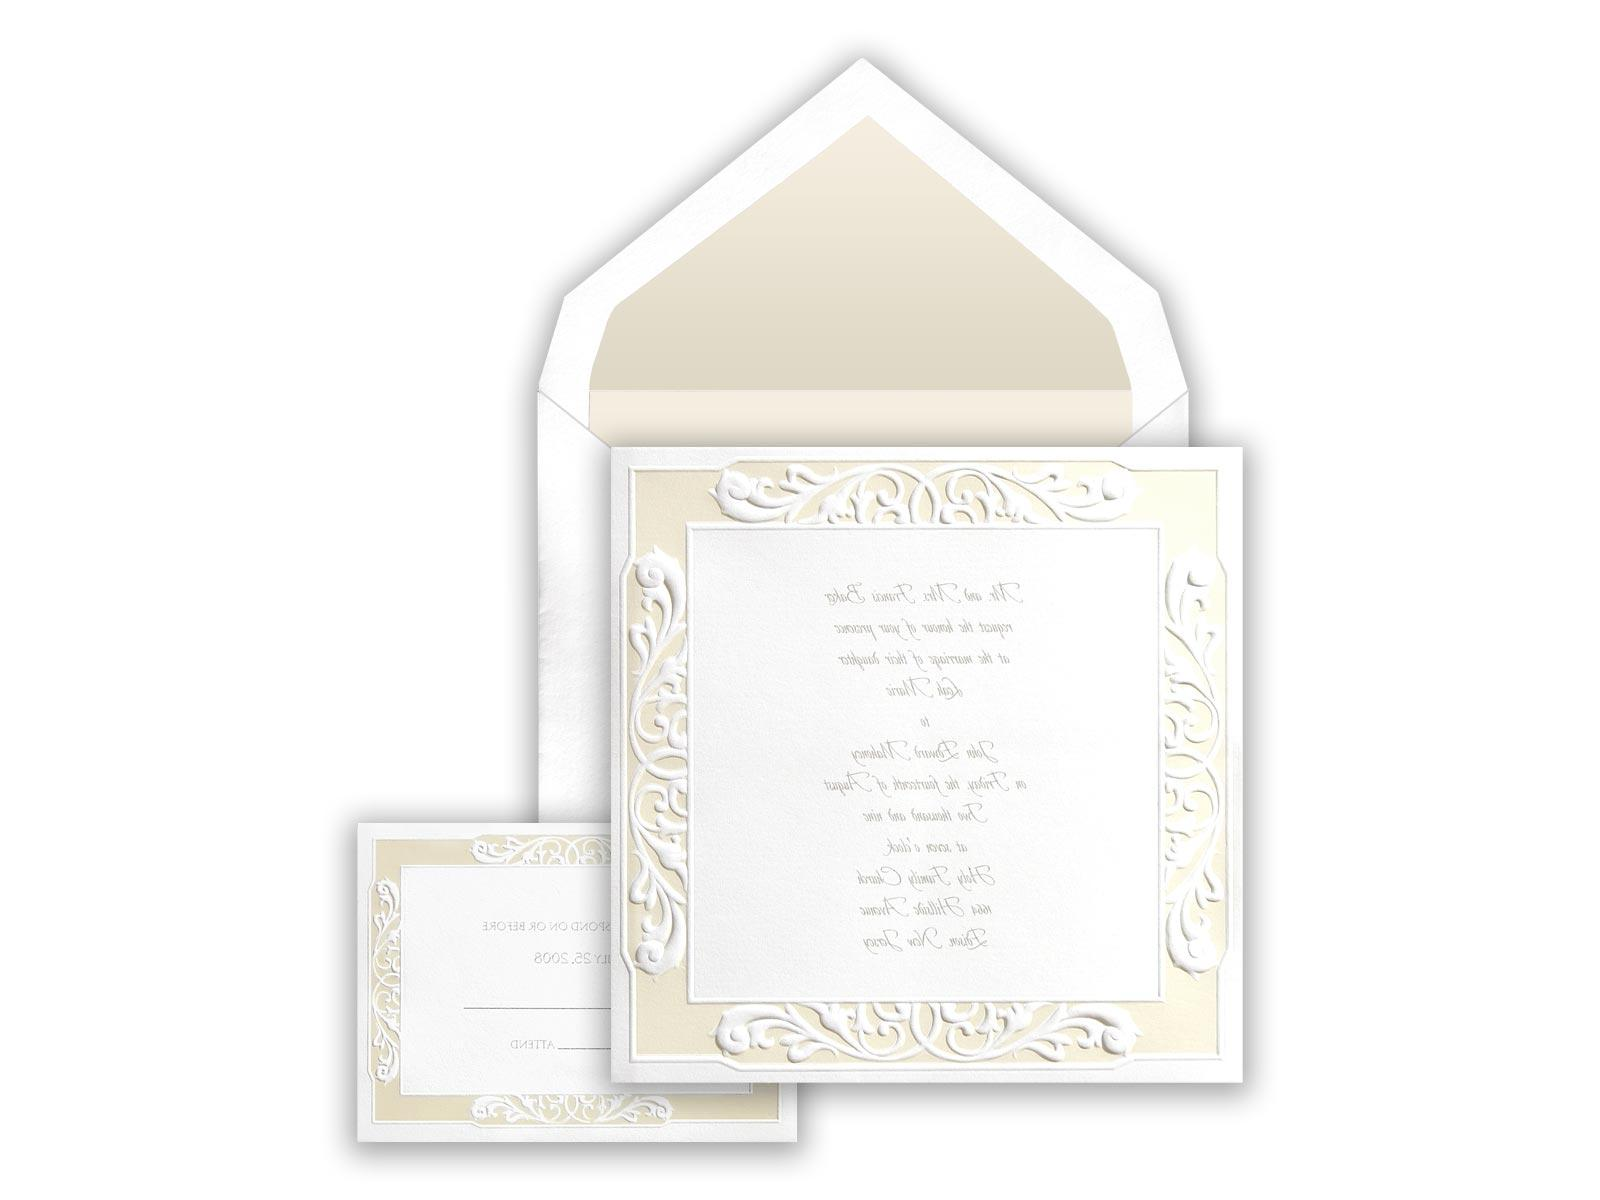 Lds Wedding Invitation Wording